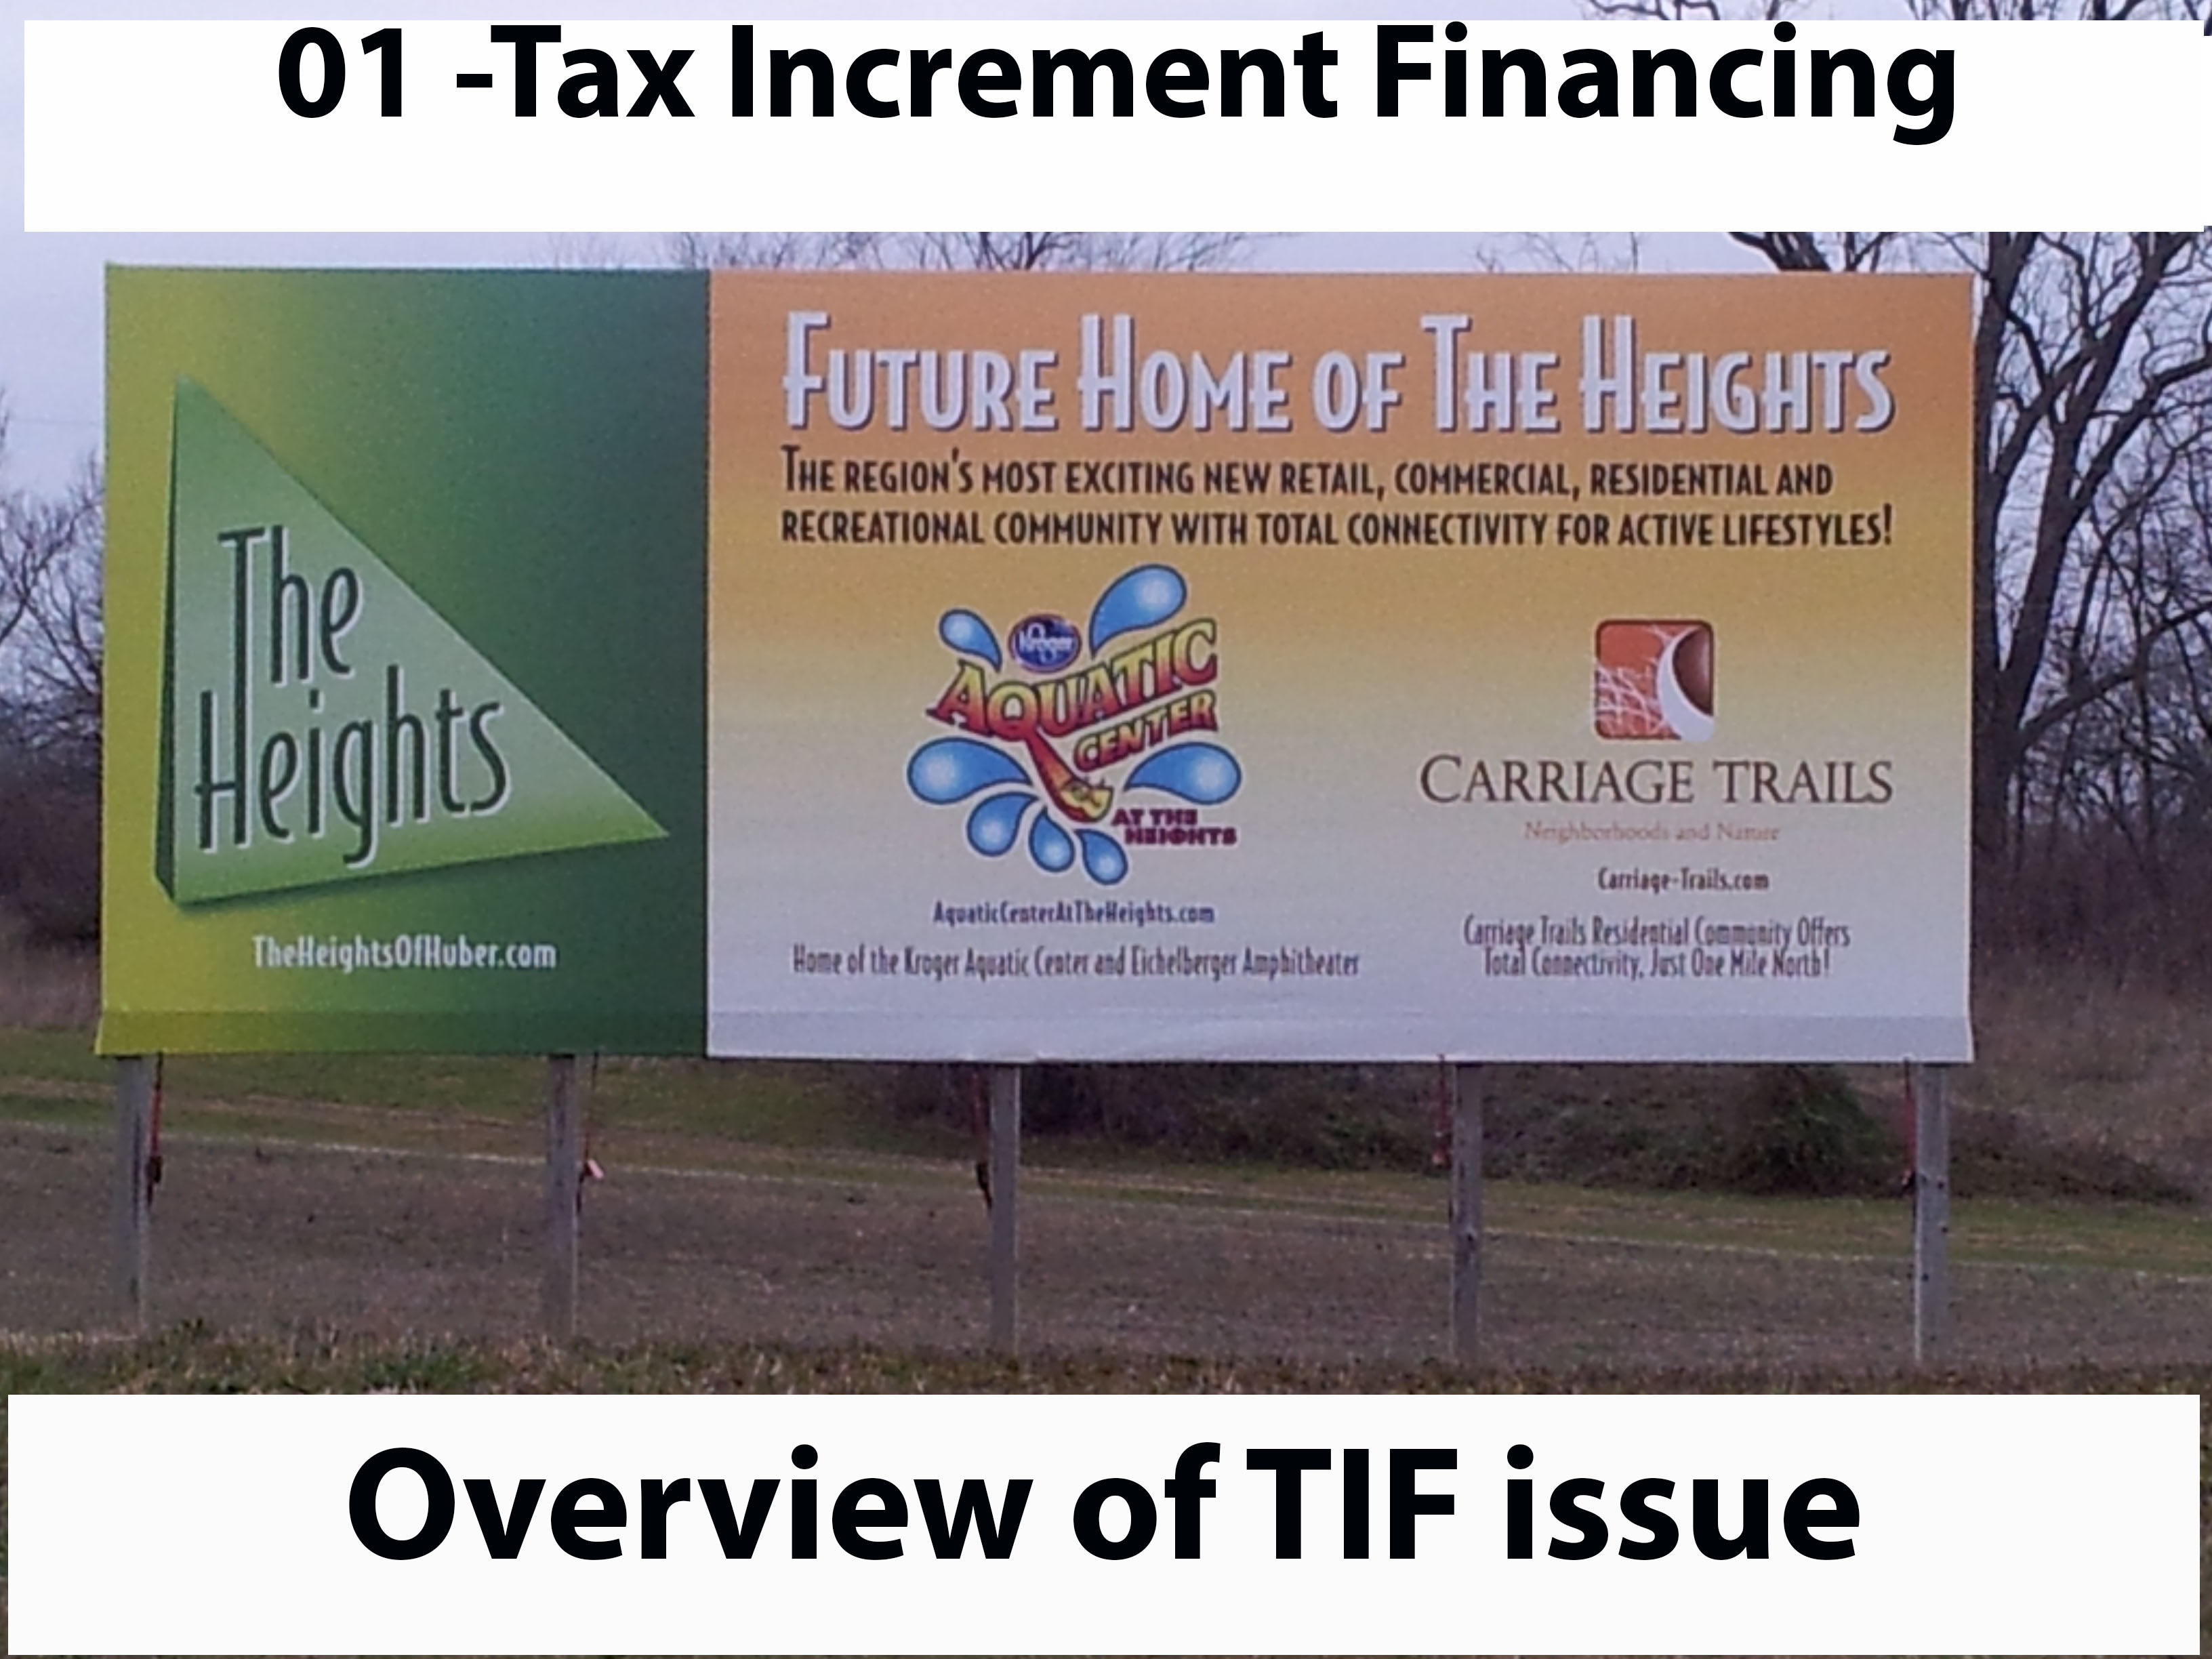 01 - Intro to the TIF issue